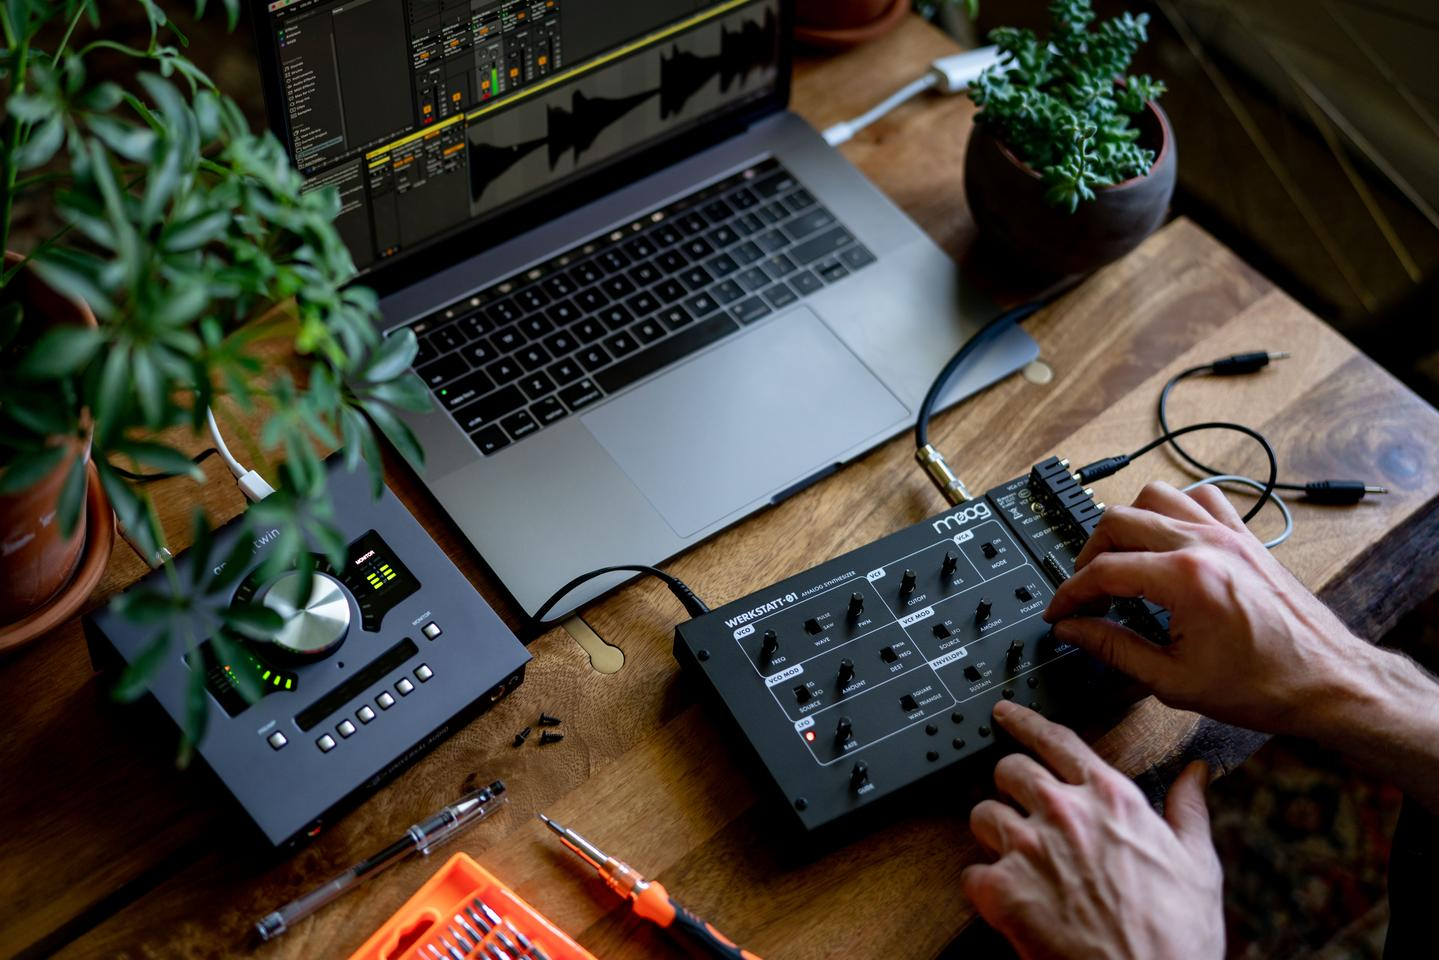 The Werkstatt-01's all-analog circuitry delivers the classic and futuristic synthesized sounds that Moog is known for